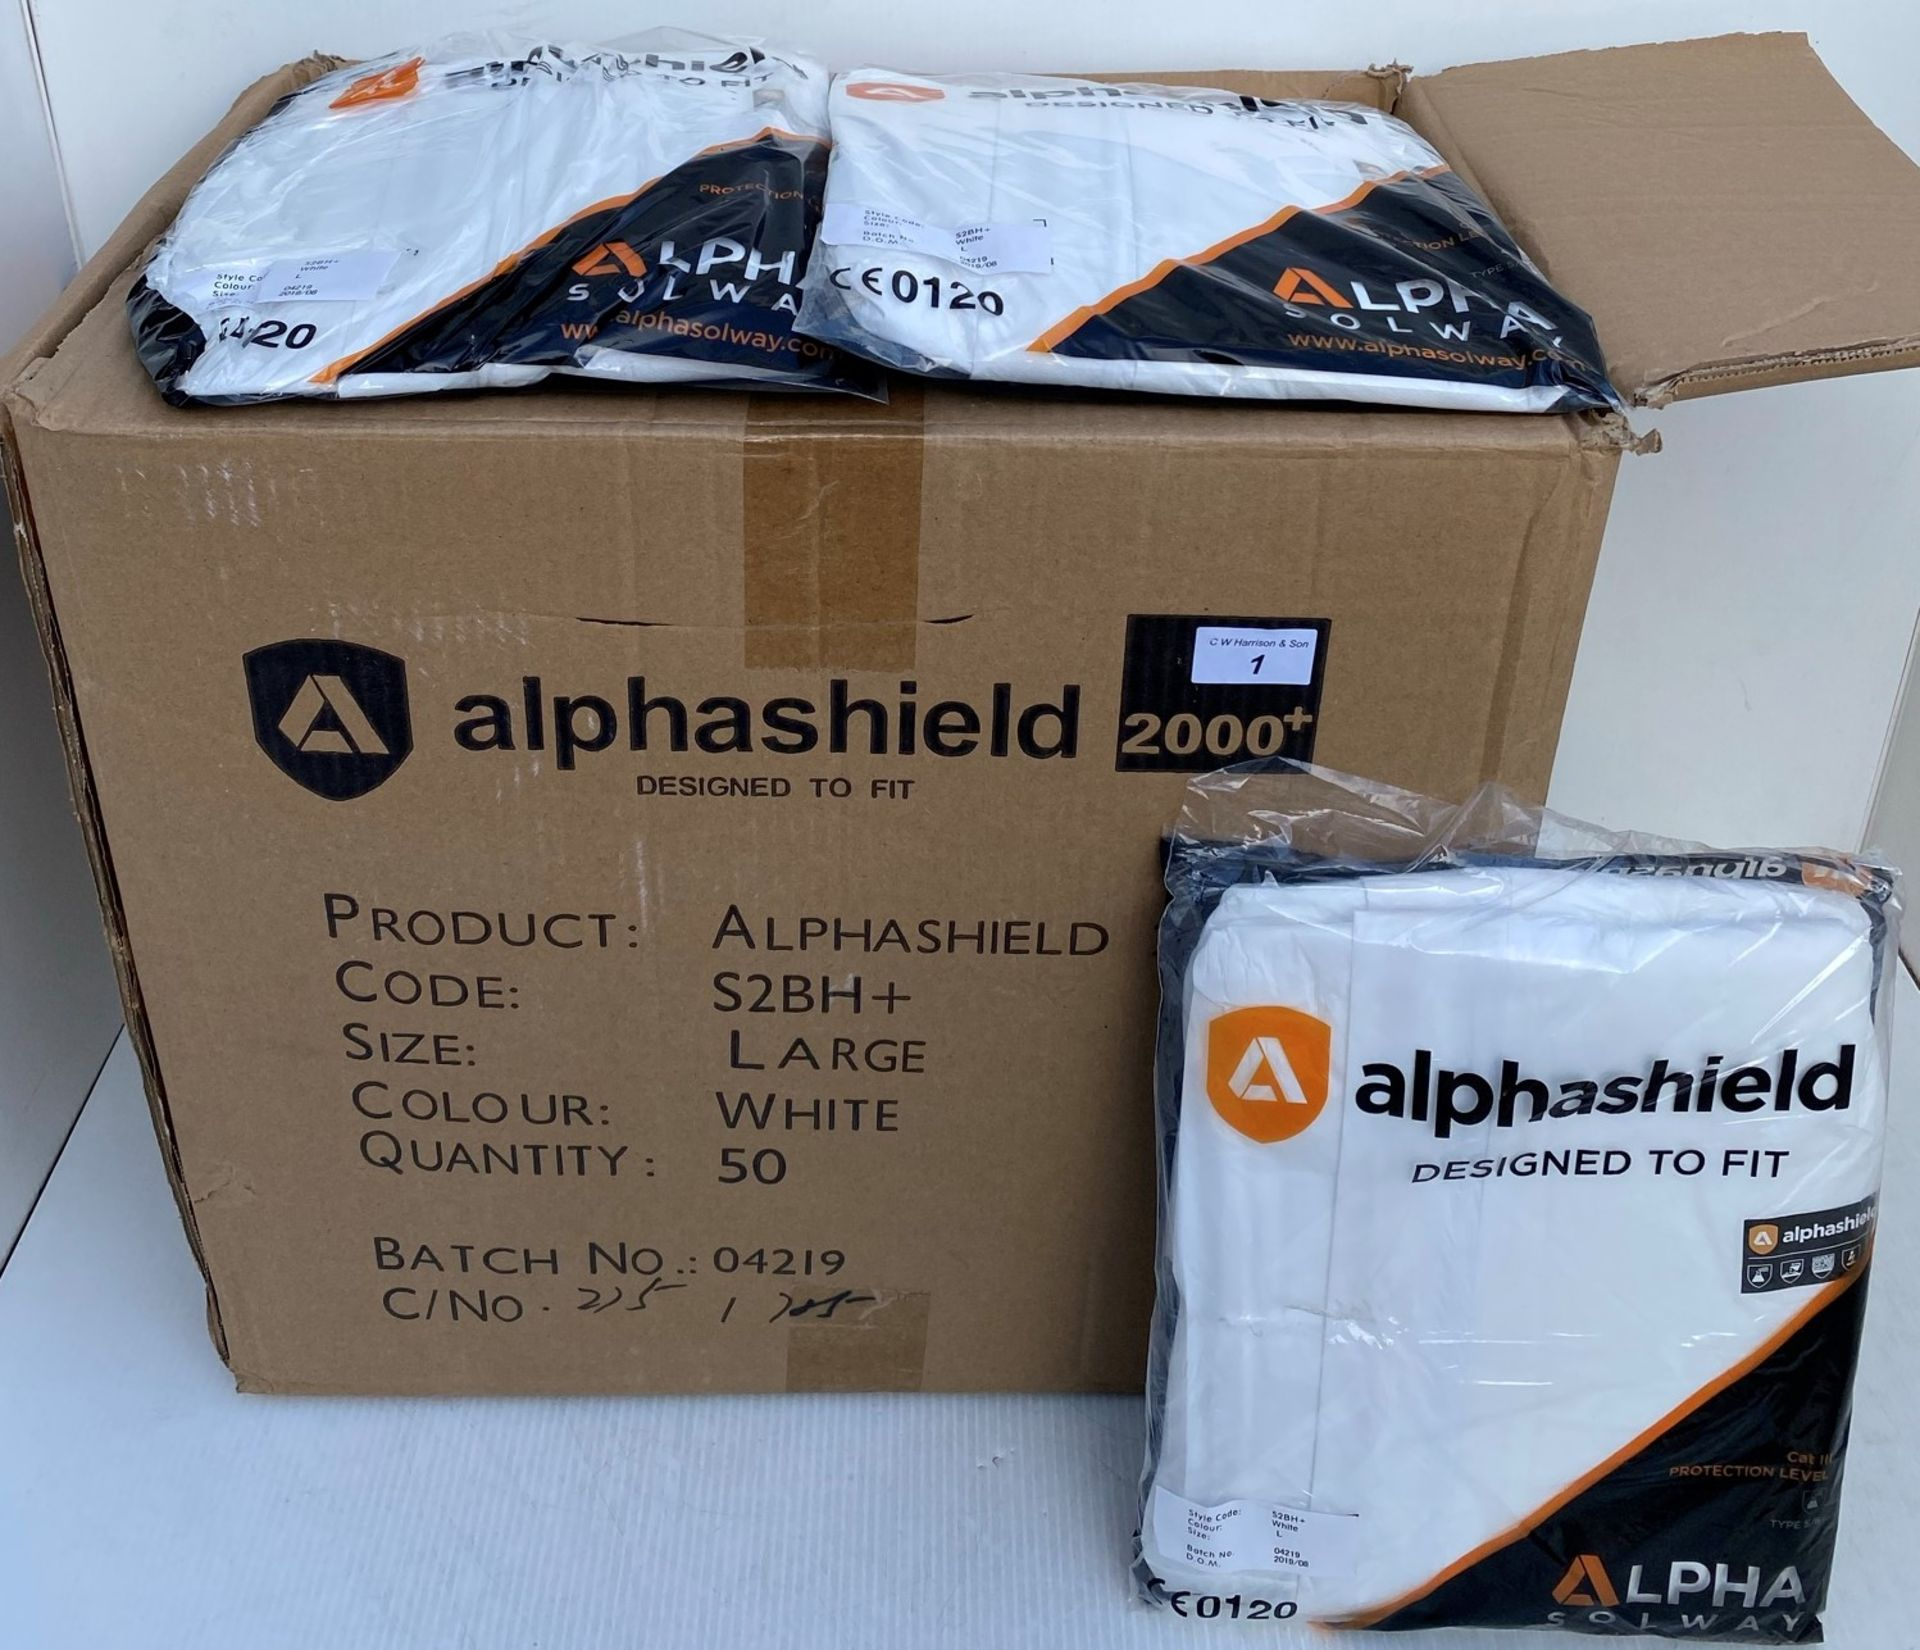 50 x Alpha Solway - Alphashield 2000+ protective S2BH+ white oversuits - Assorted sizes, - Image 2 of 3